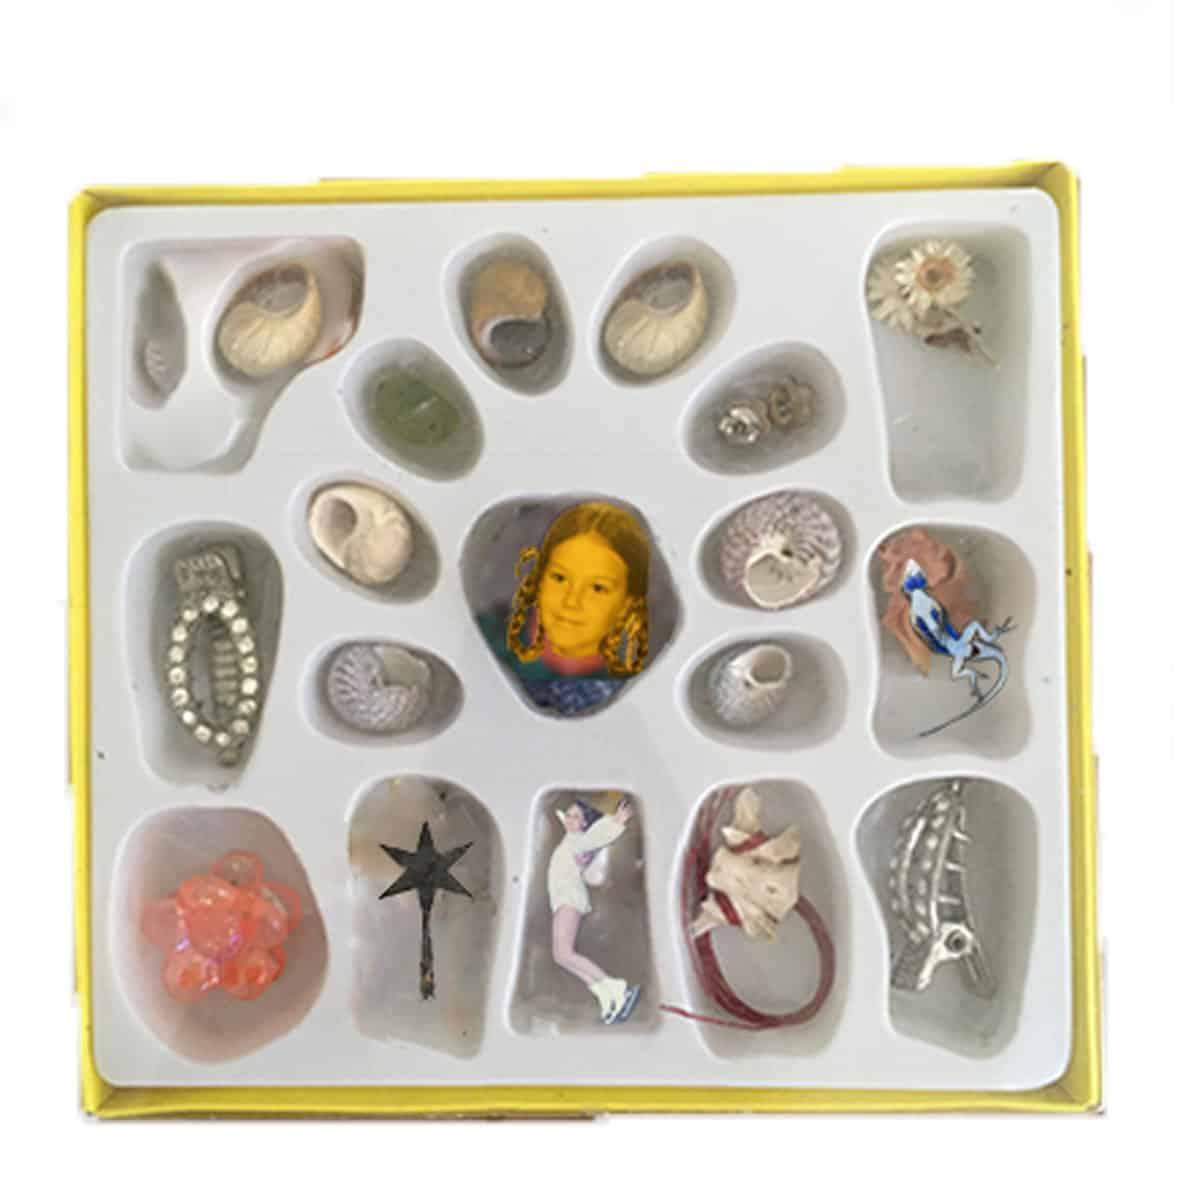 photoshop collage of plastic shell packaging. inside packaging, flowers, seashells, hair clips, and figures from photographs.